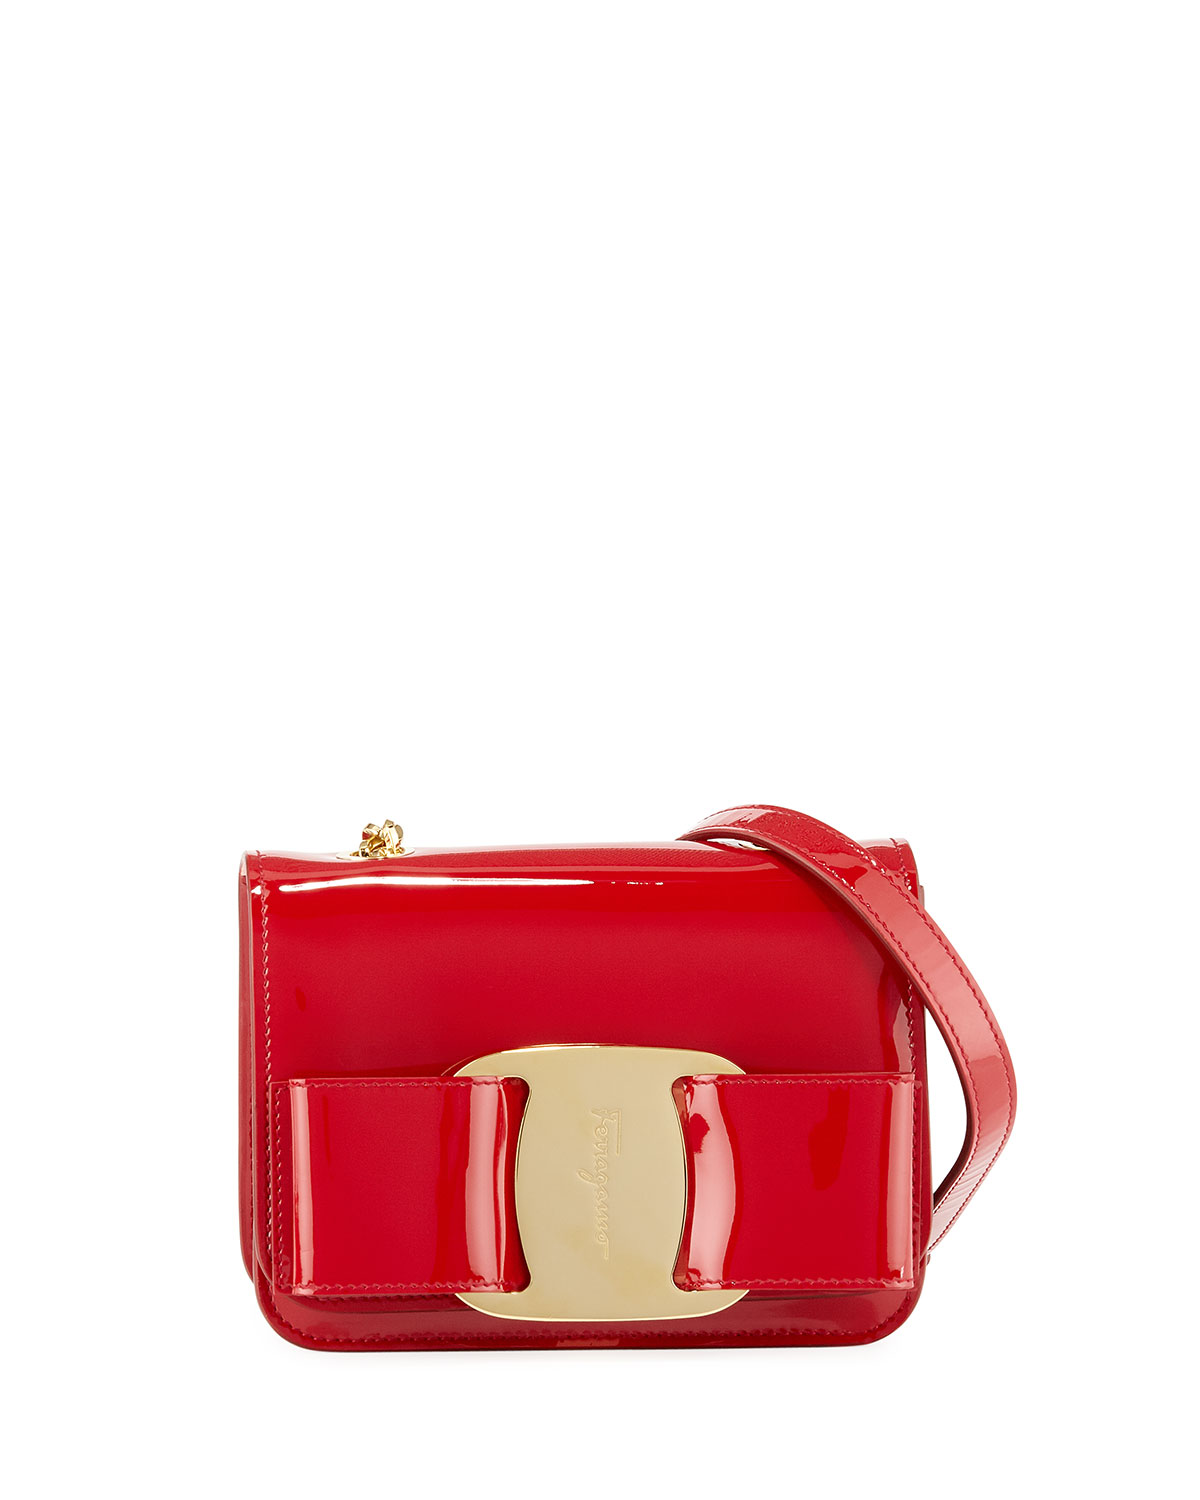 Salvatore Ferragamo Vara Rainbow Patent Shoulder Bag  514136a1b13b2